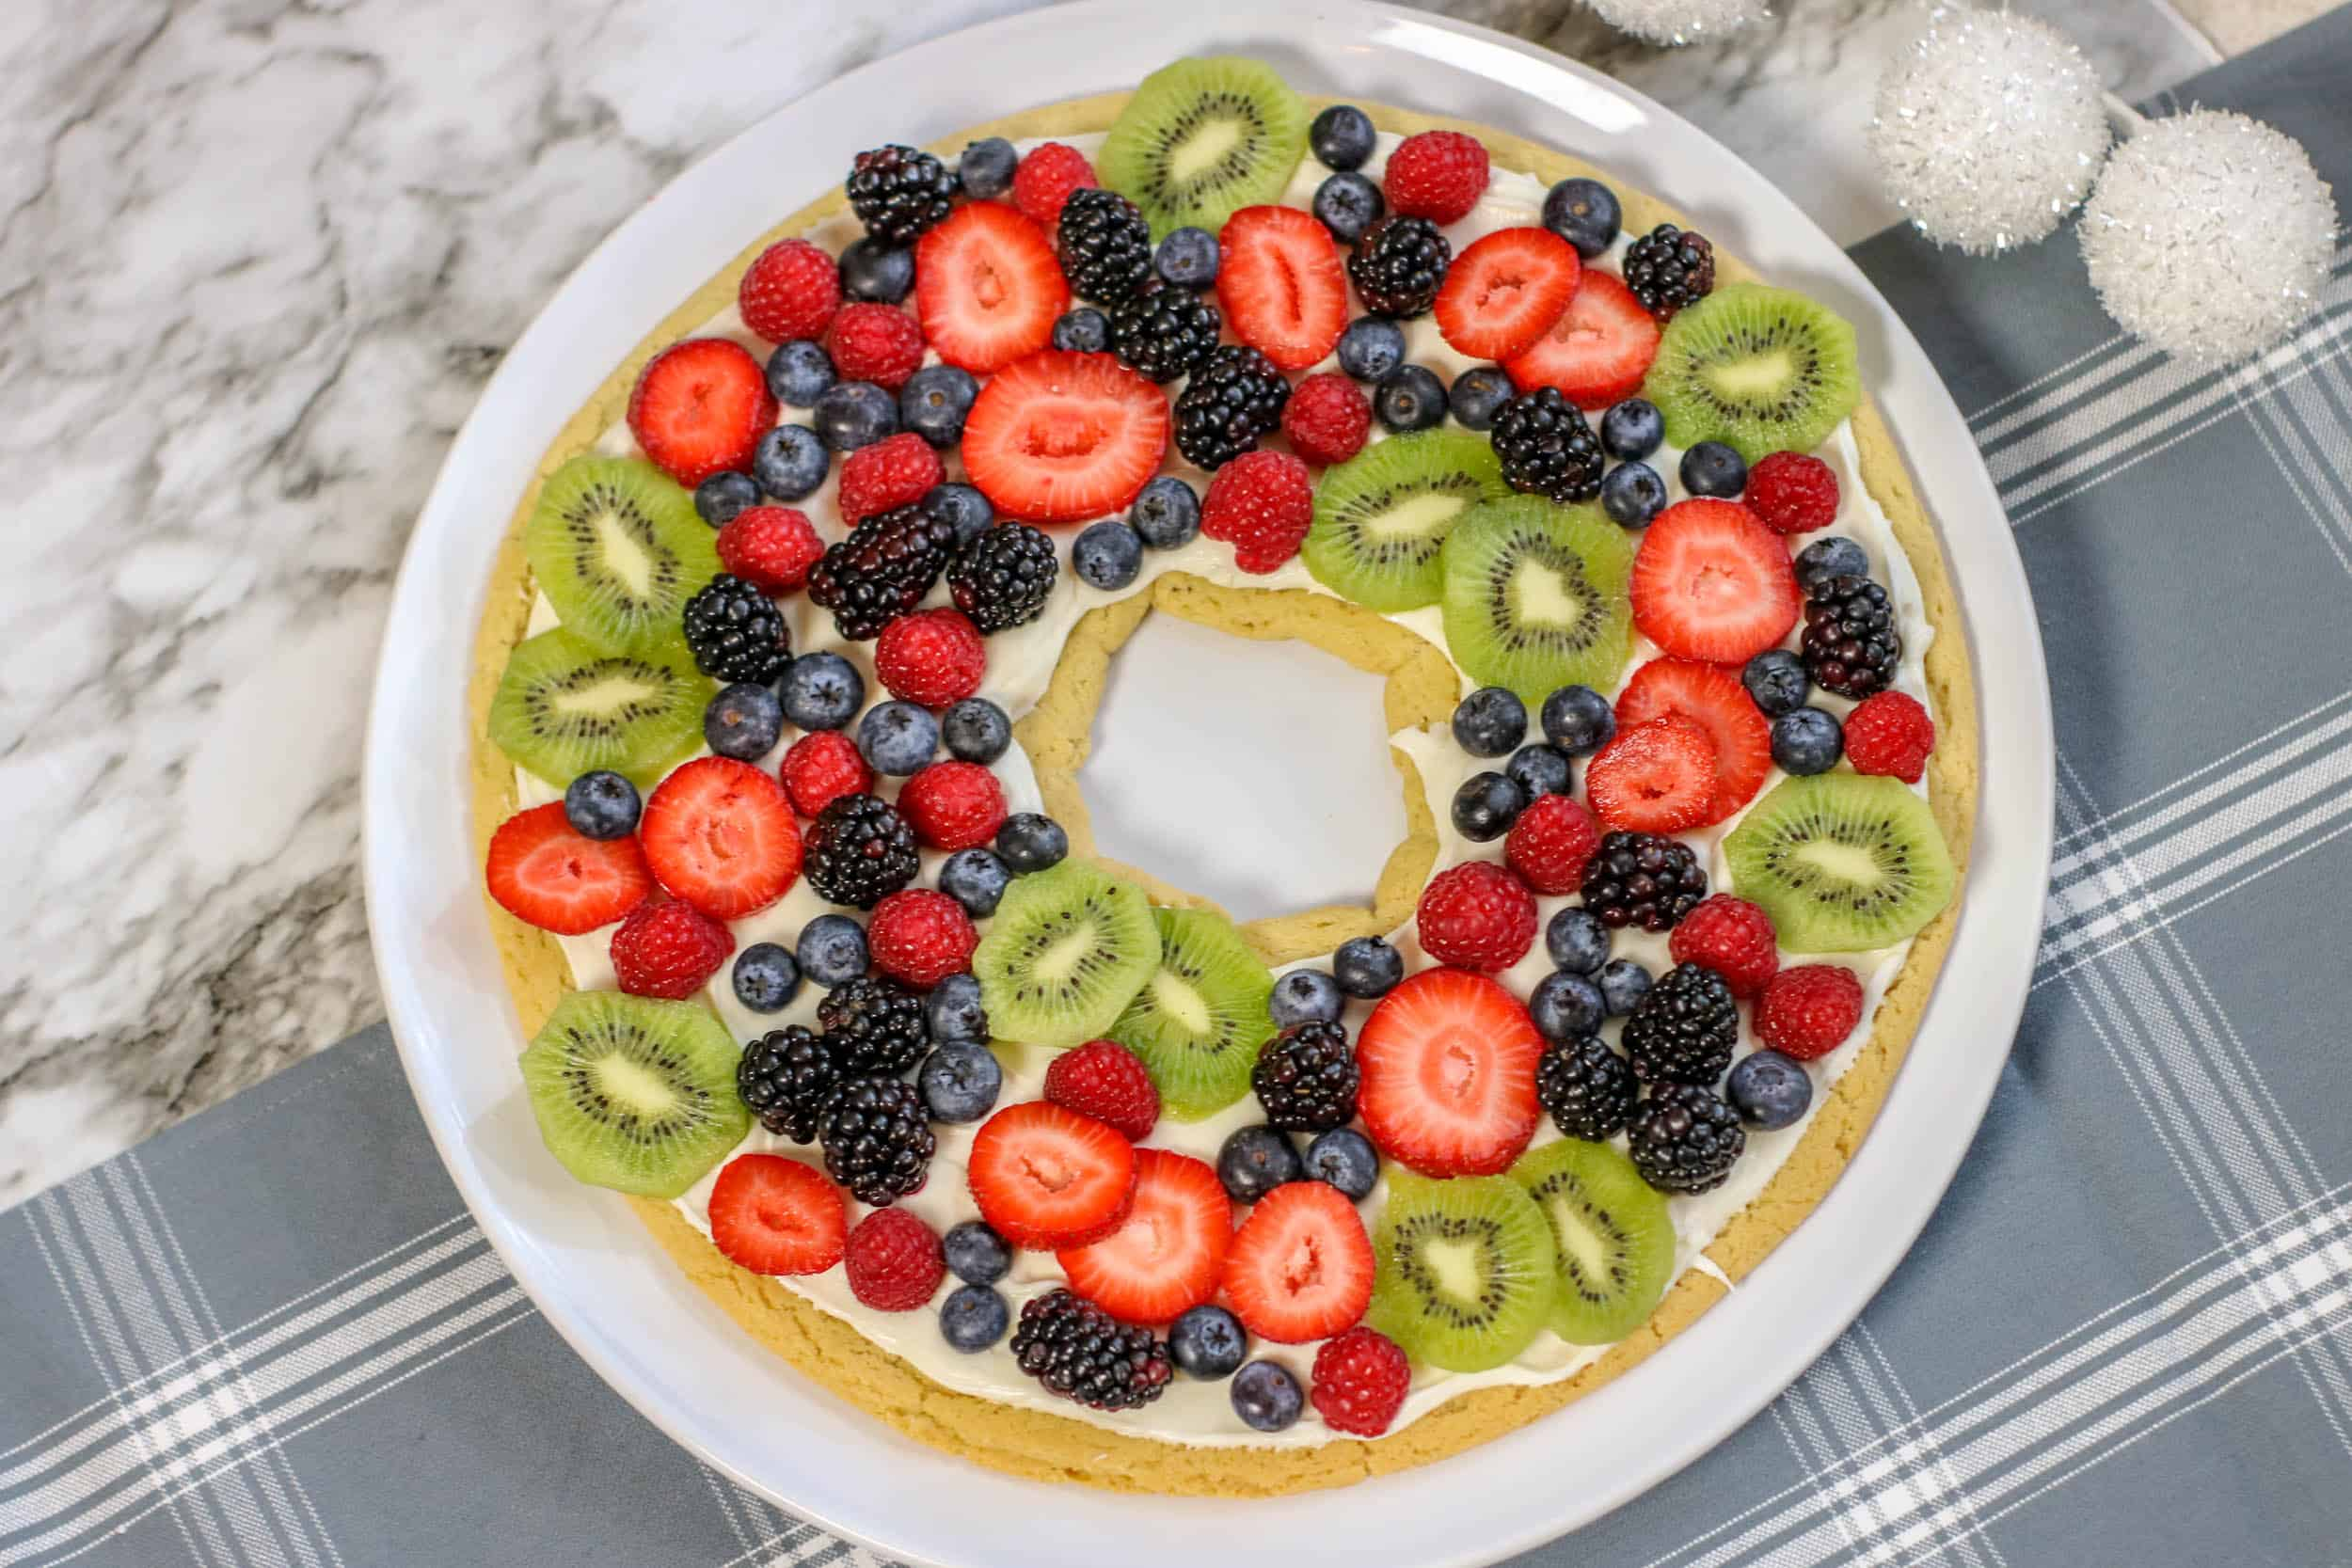 Fruit Pizza Christmas Wreath on light t=blue table cloth.